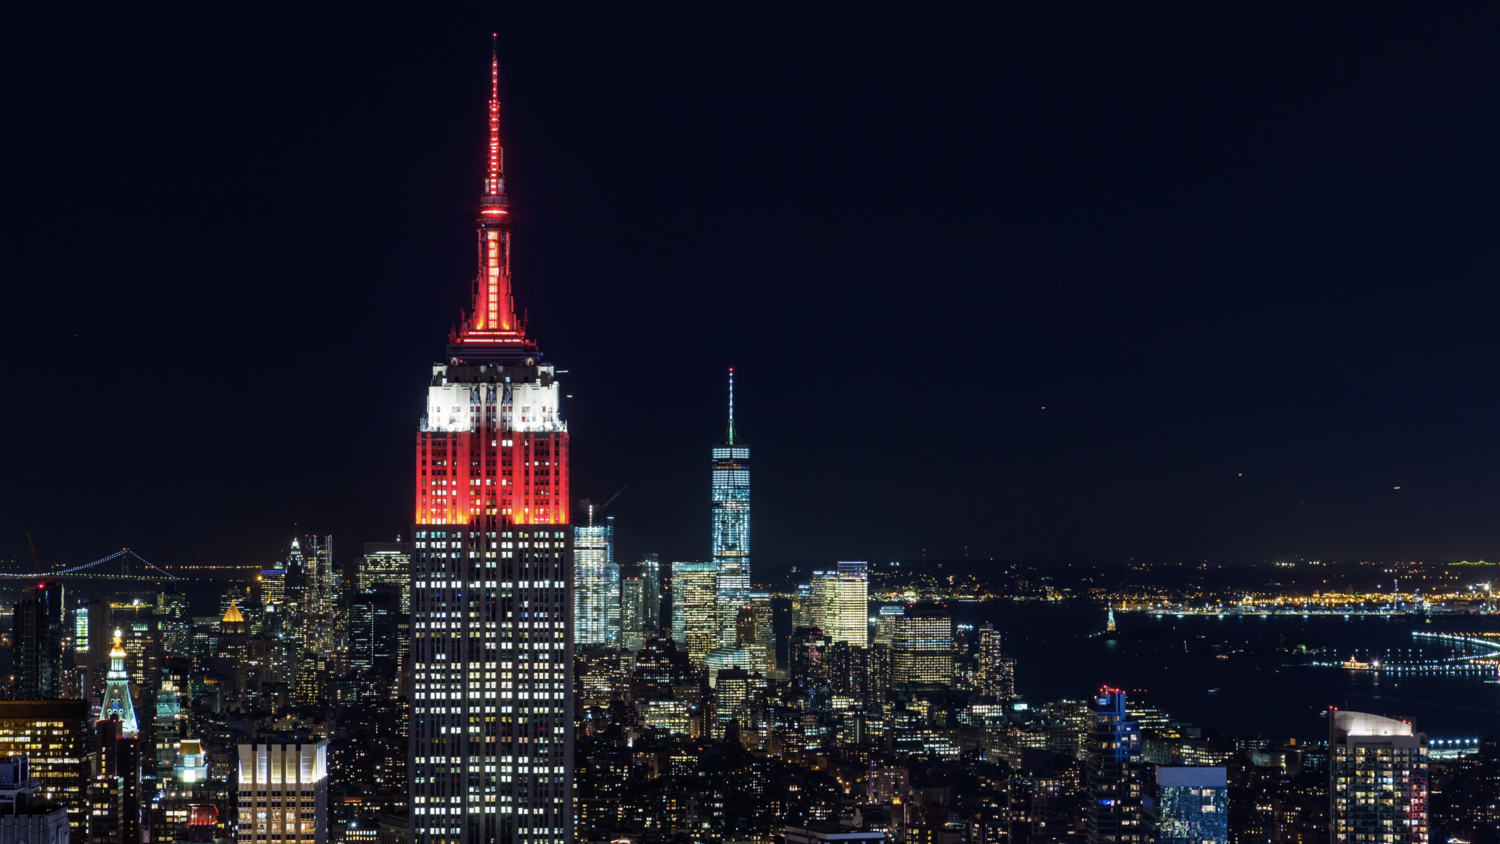 (HD) Empire State Building And Freedom Tower Night - Emeric's Timelapse